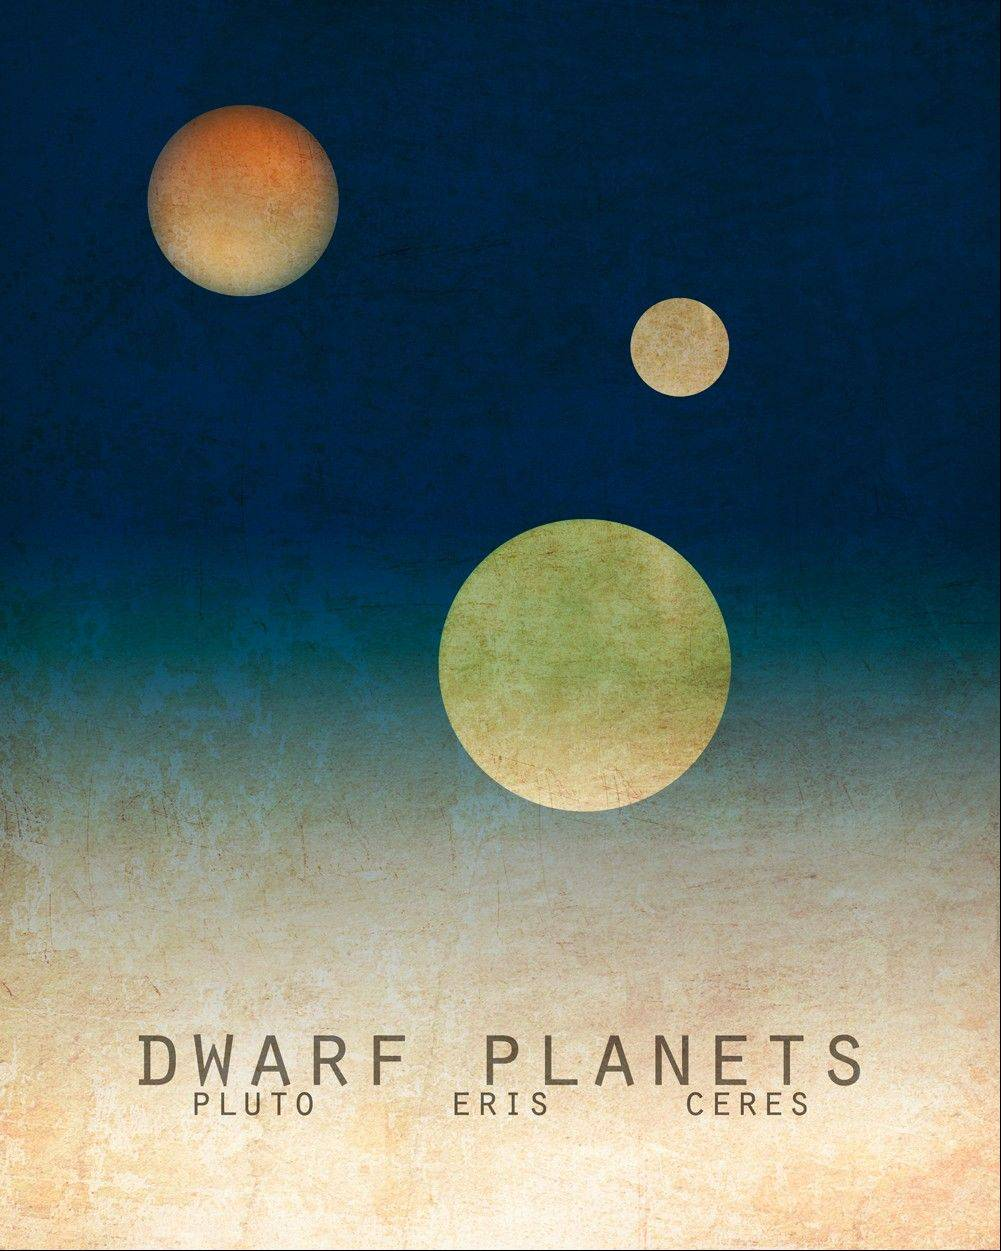 This print by artist Megan Lee shows the dwarf planets, Pluto, Eris and Ceres.